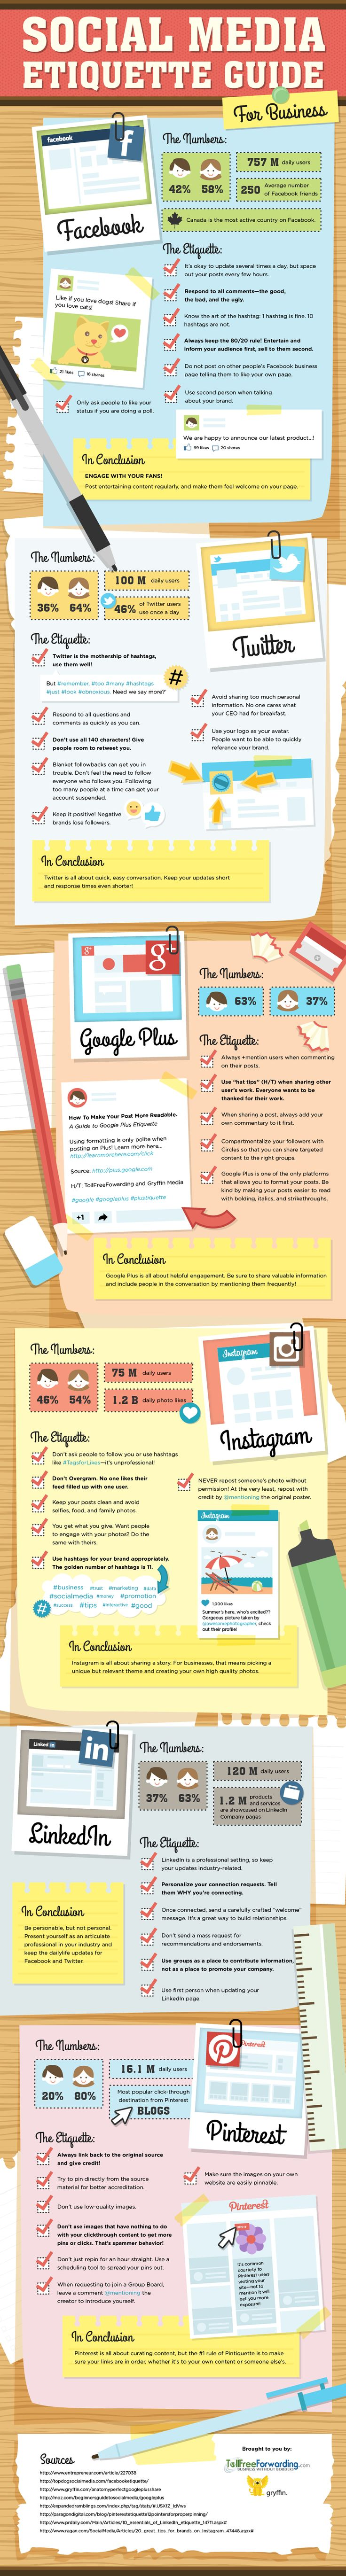 A Visual Guide to Social Media Etiquette 892a723d77e6c20f8a2284b5f7554b38